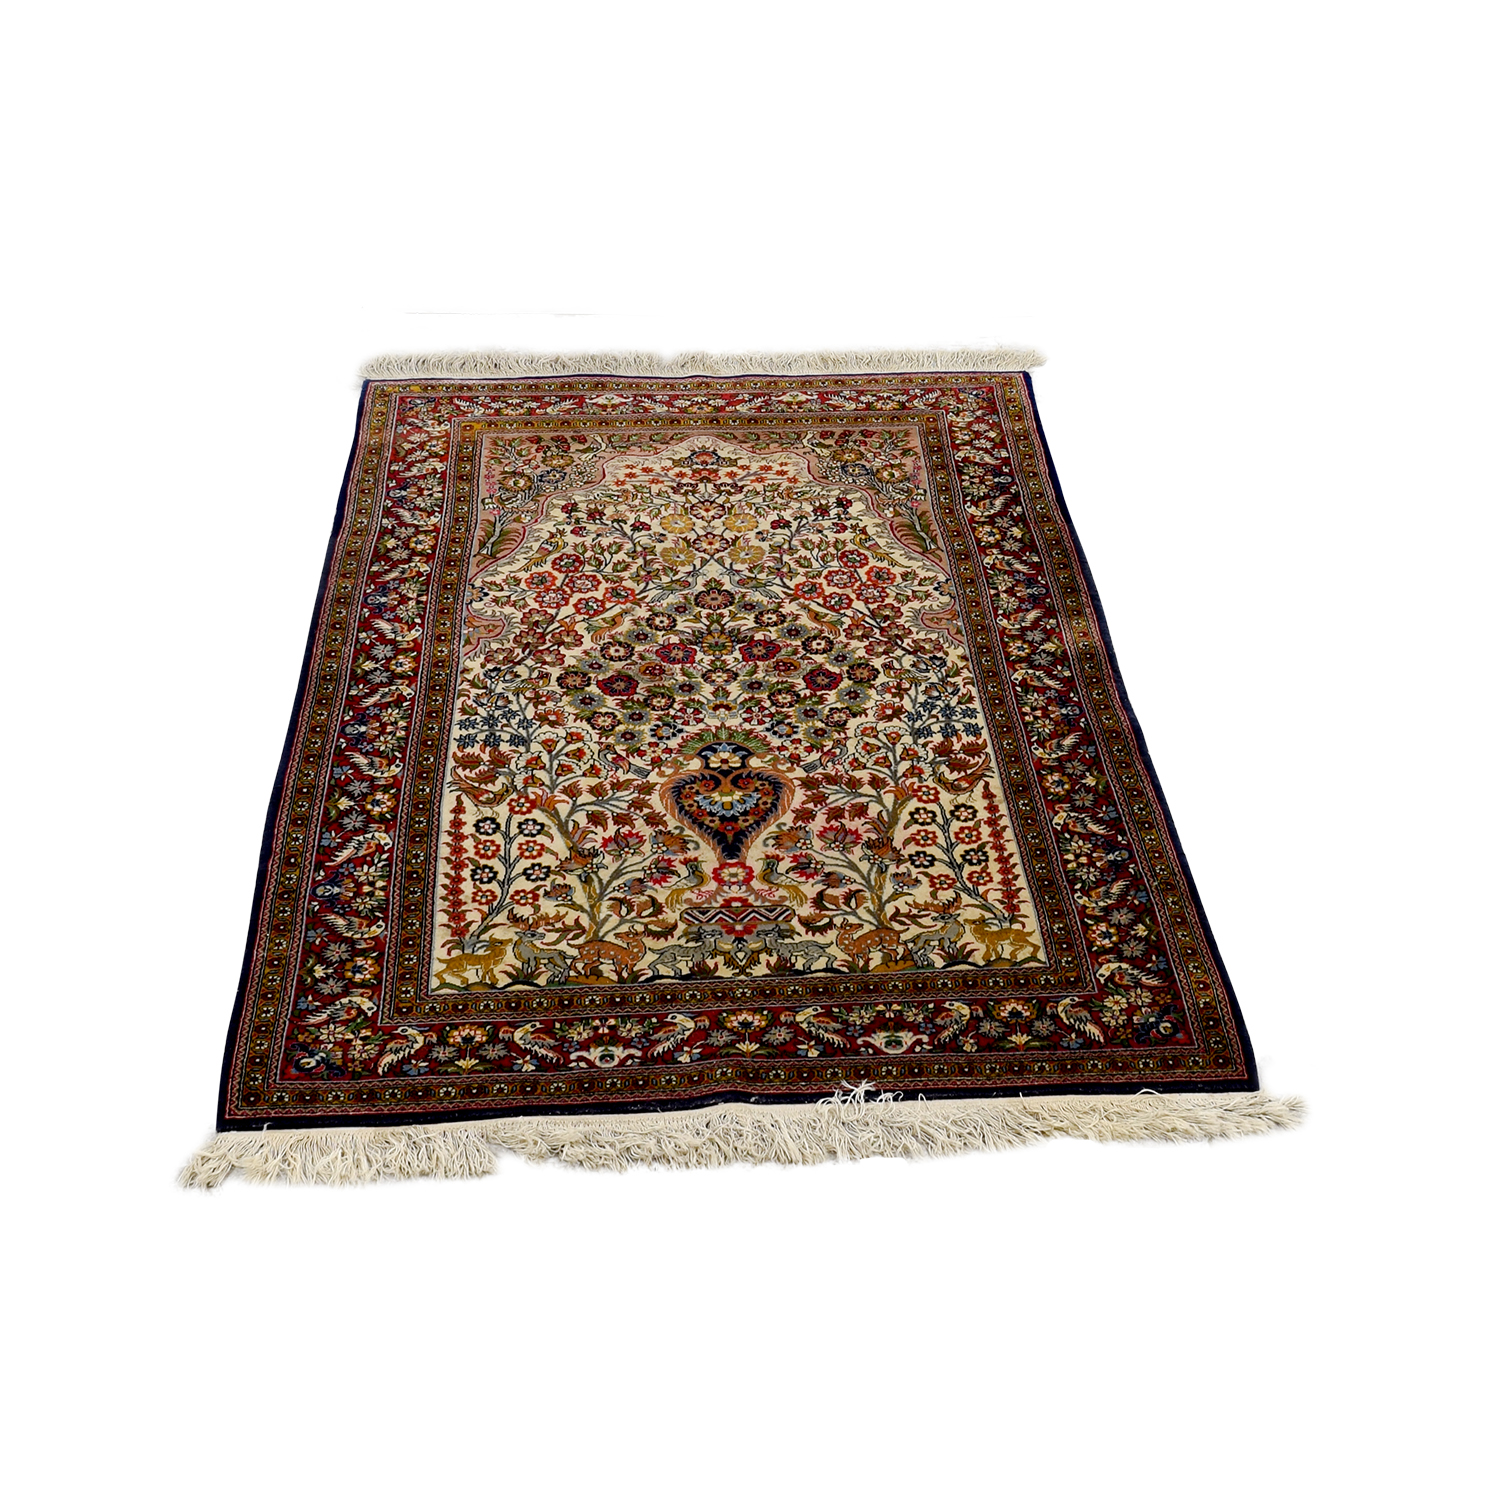 ABC Carpet And Home ABC Carpet & Home Persian